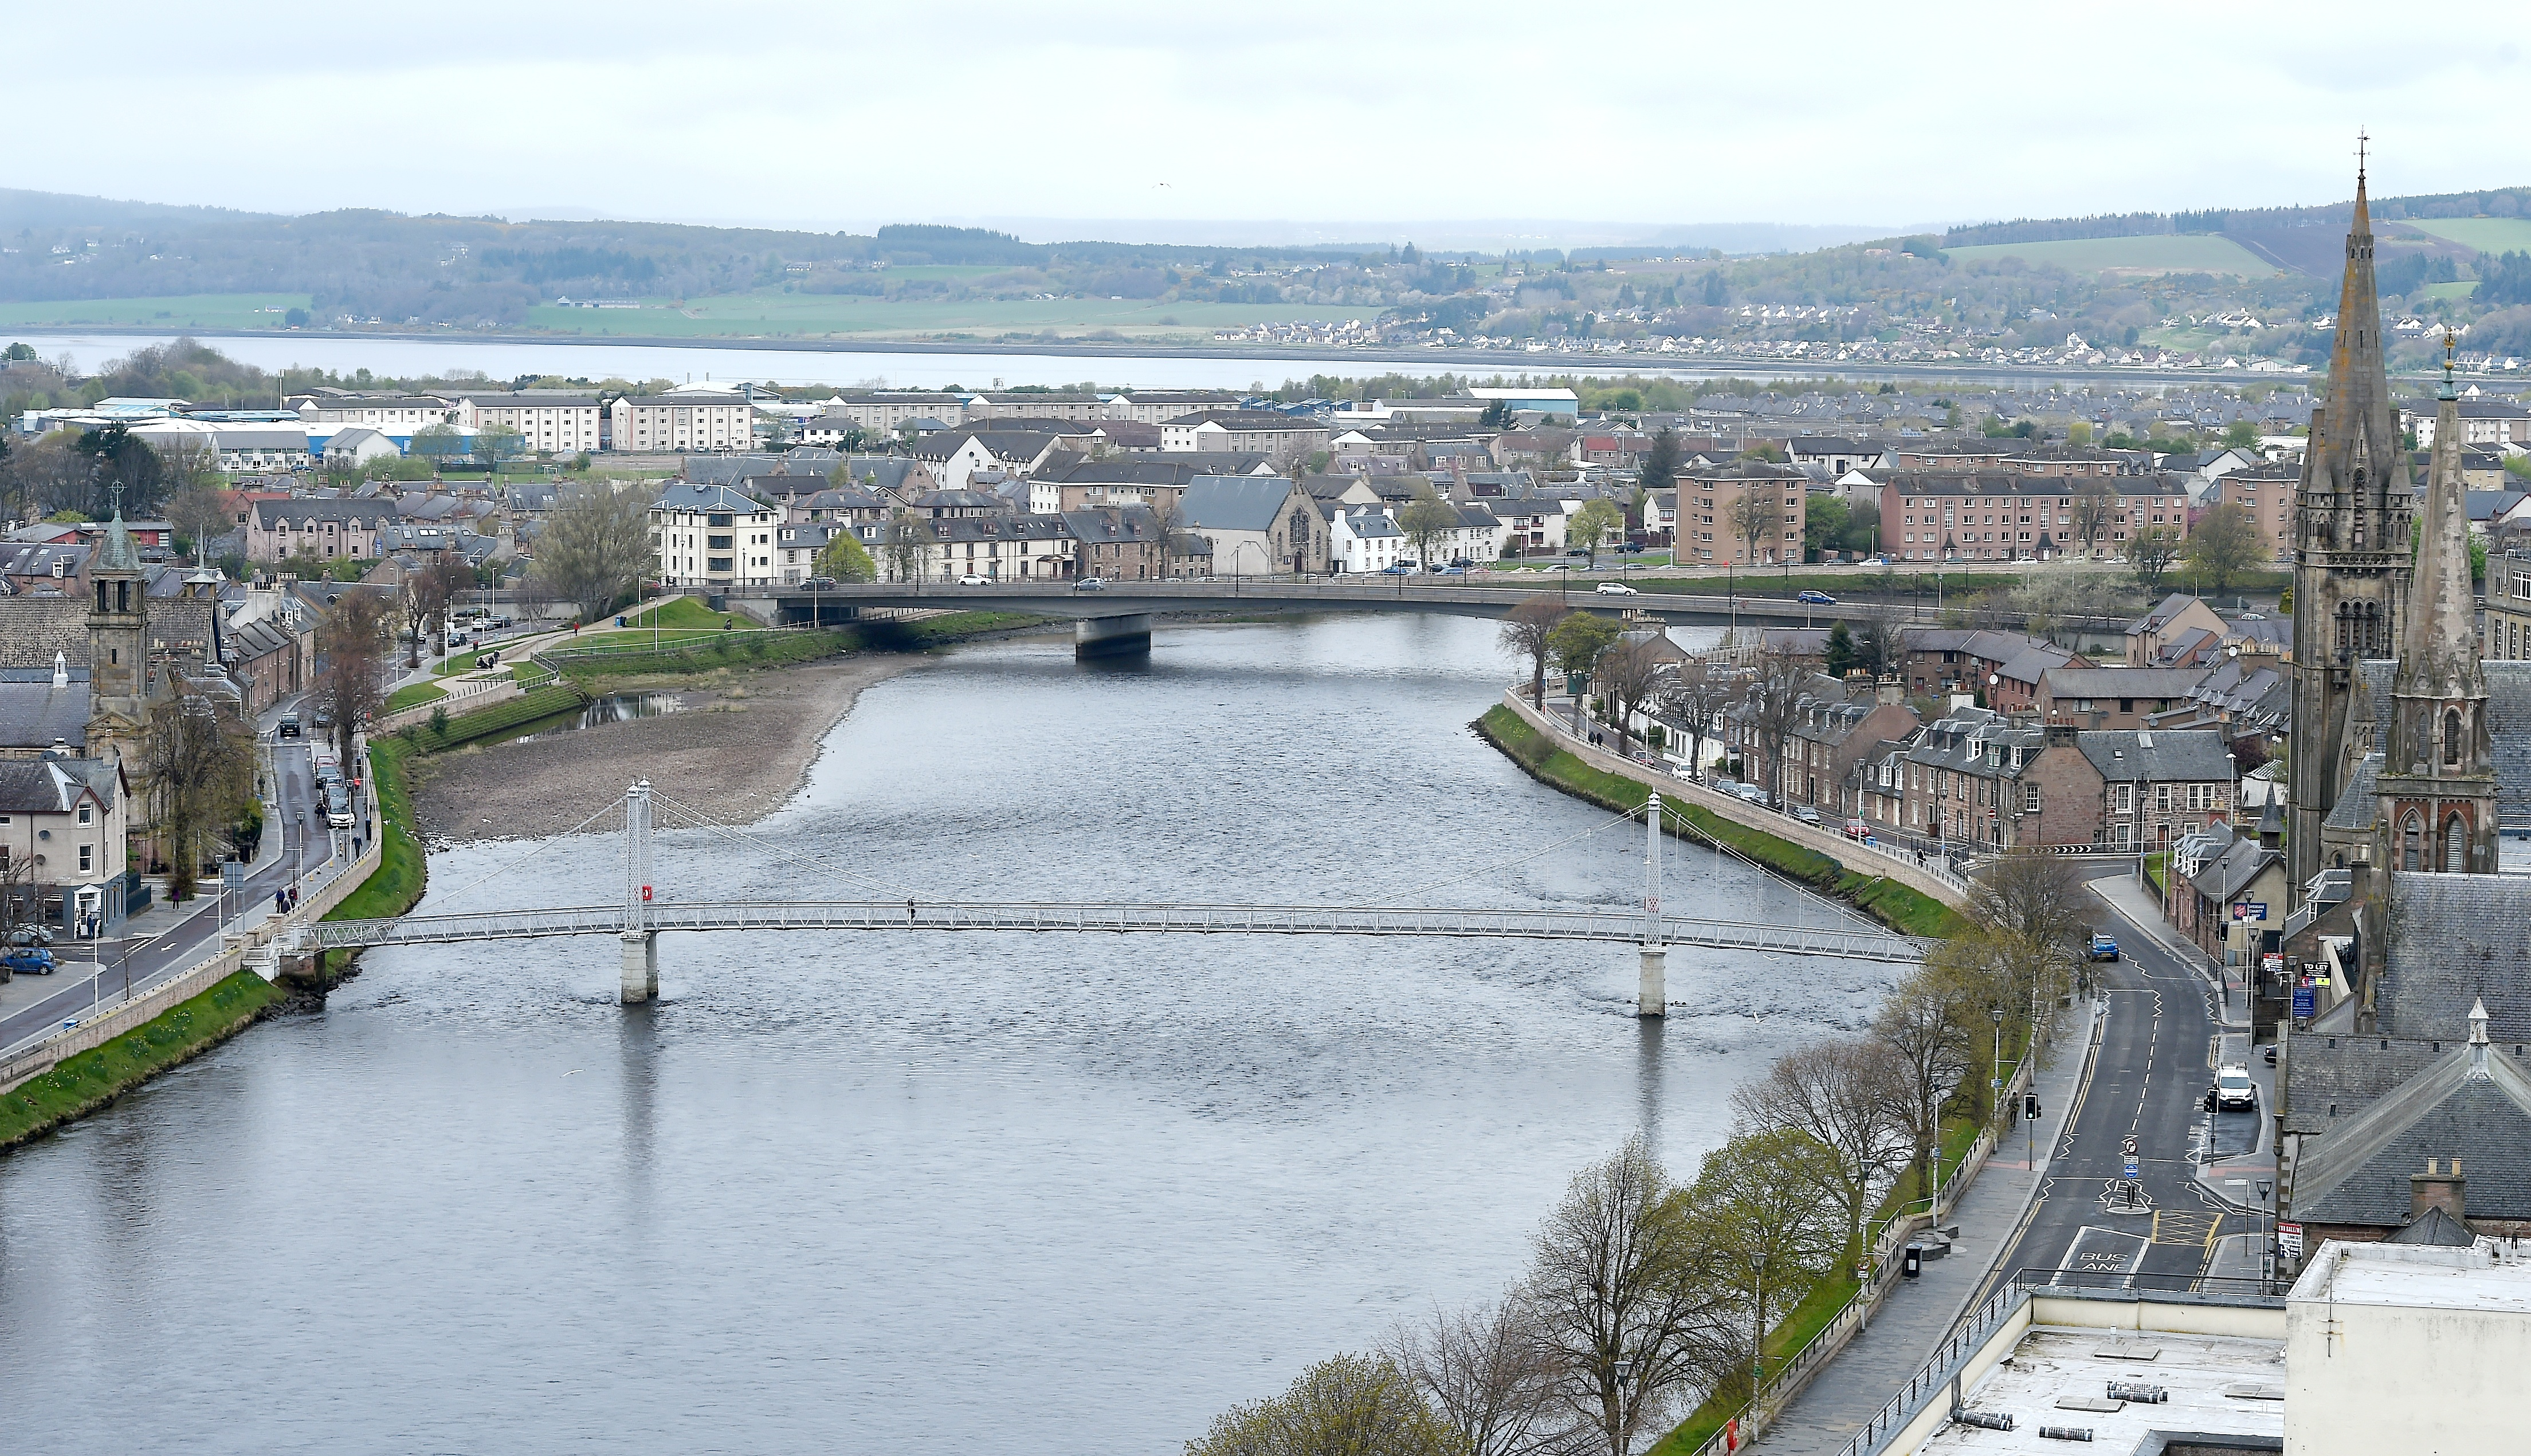 View from the North Tower of Inverness Castle. Picture by Sandy McCook